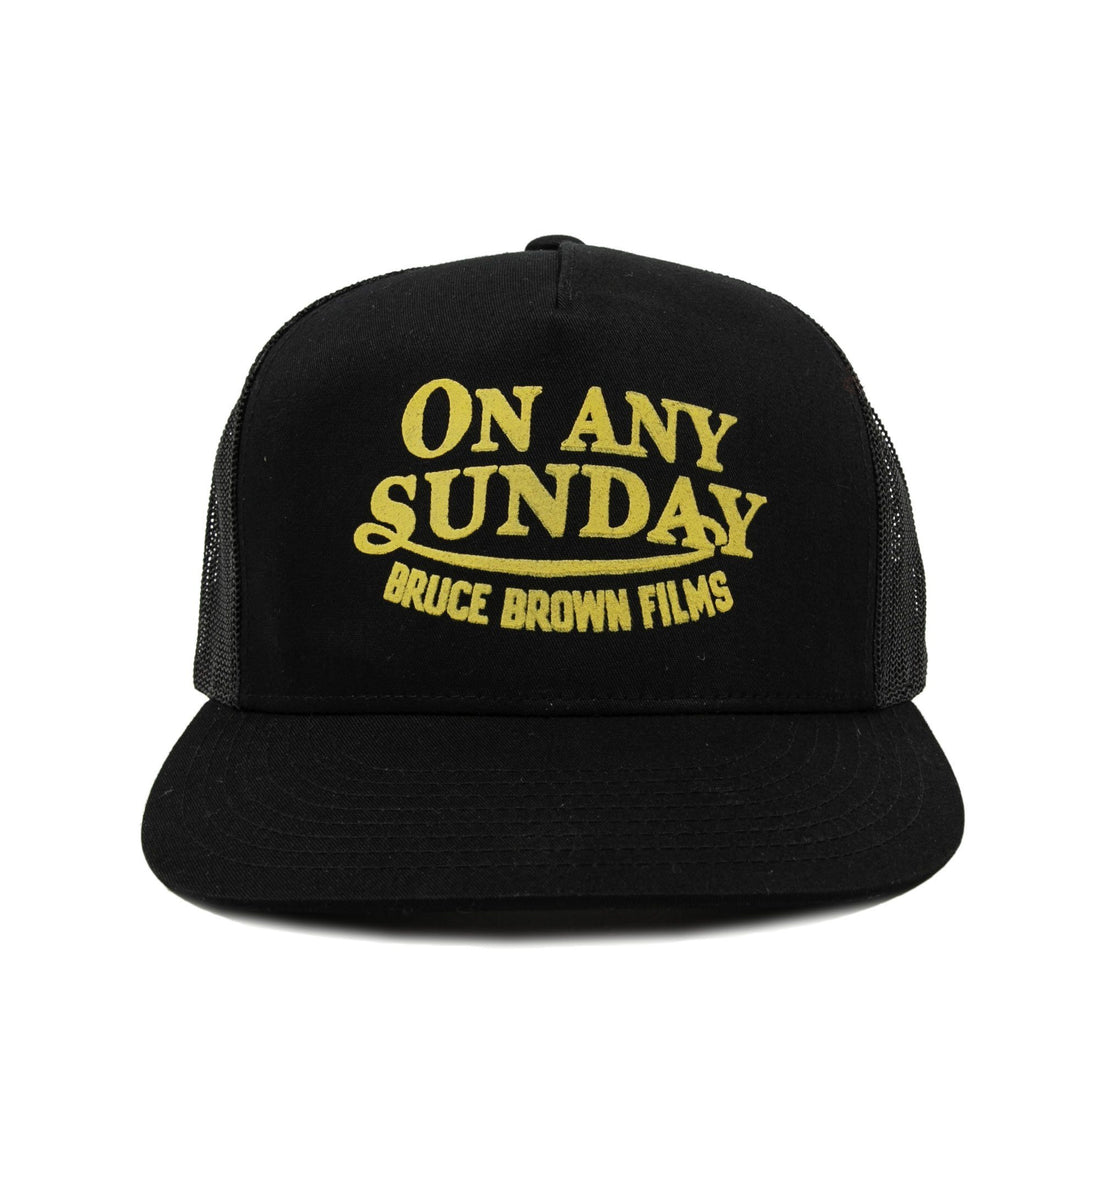 Iron & Resin On Any Sunday Hat - Headwear - Iron and Resin